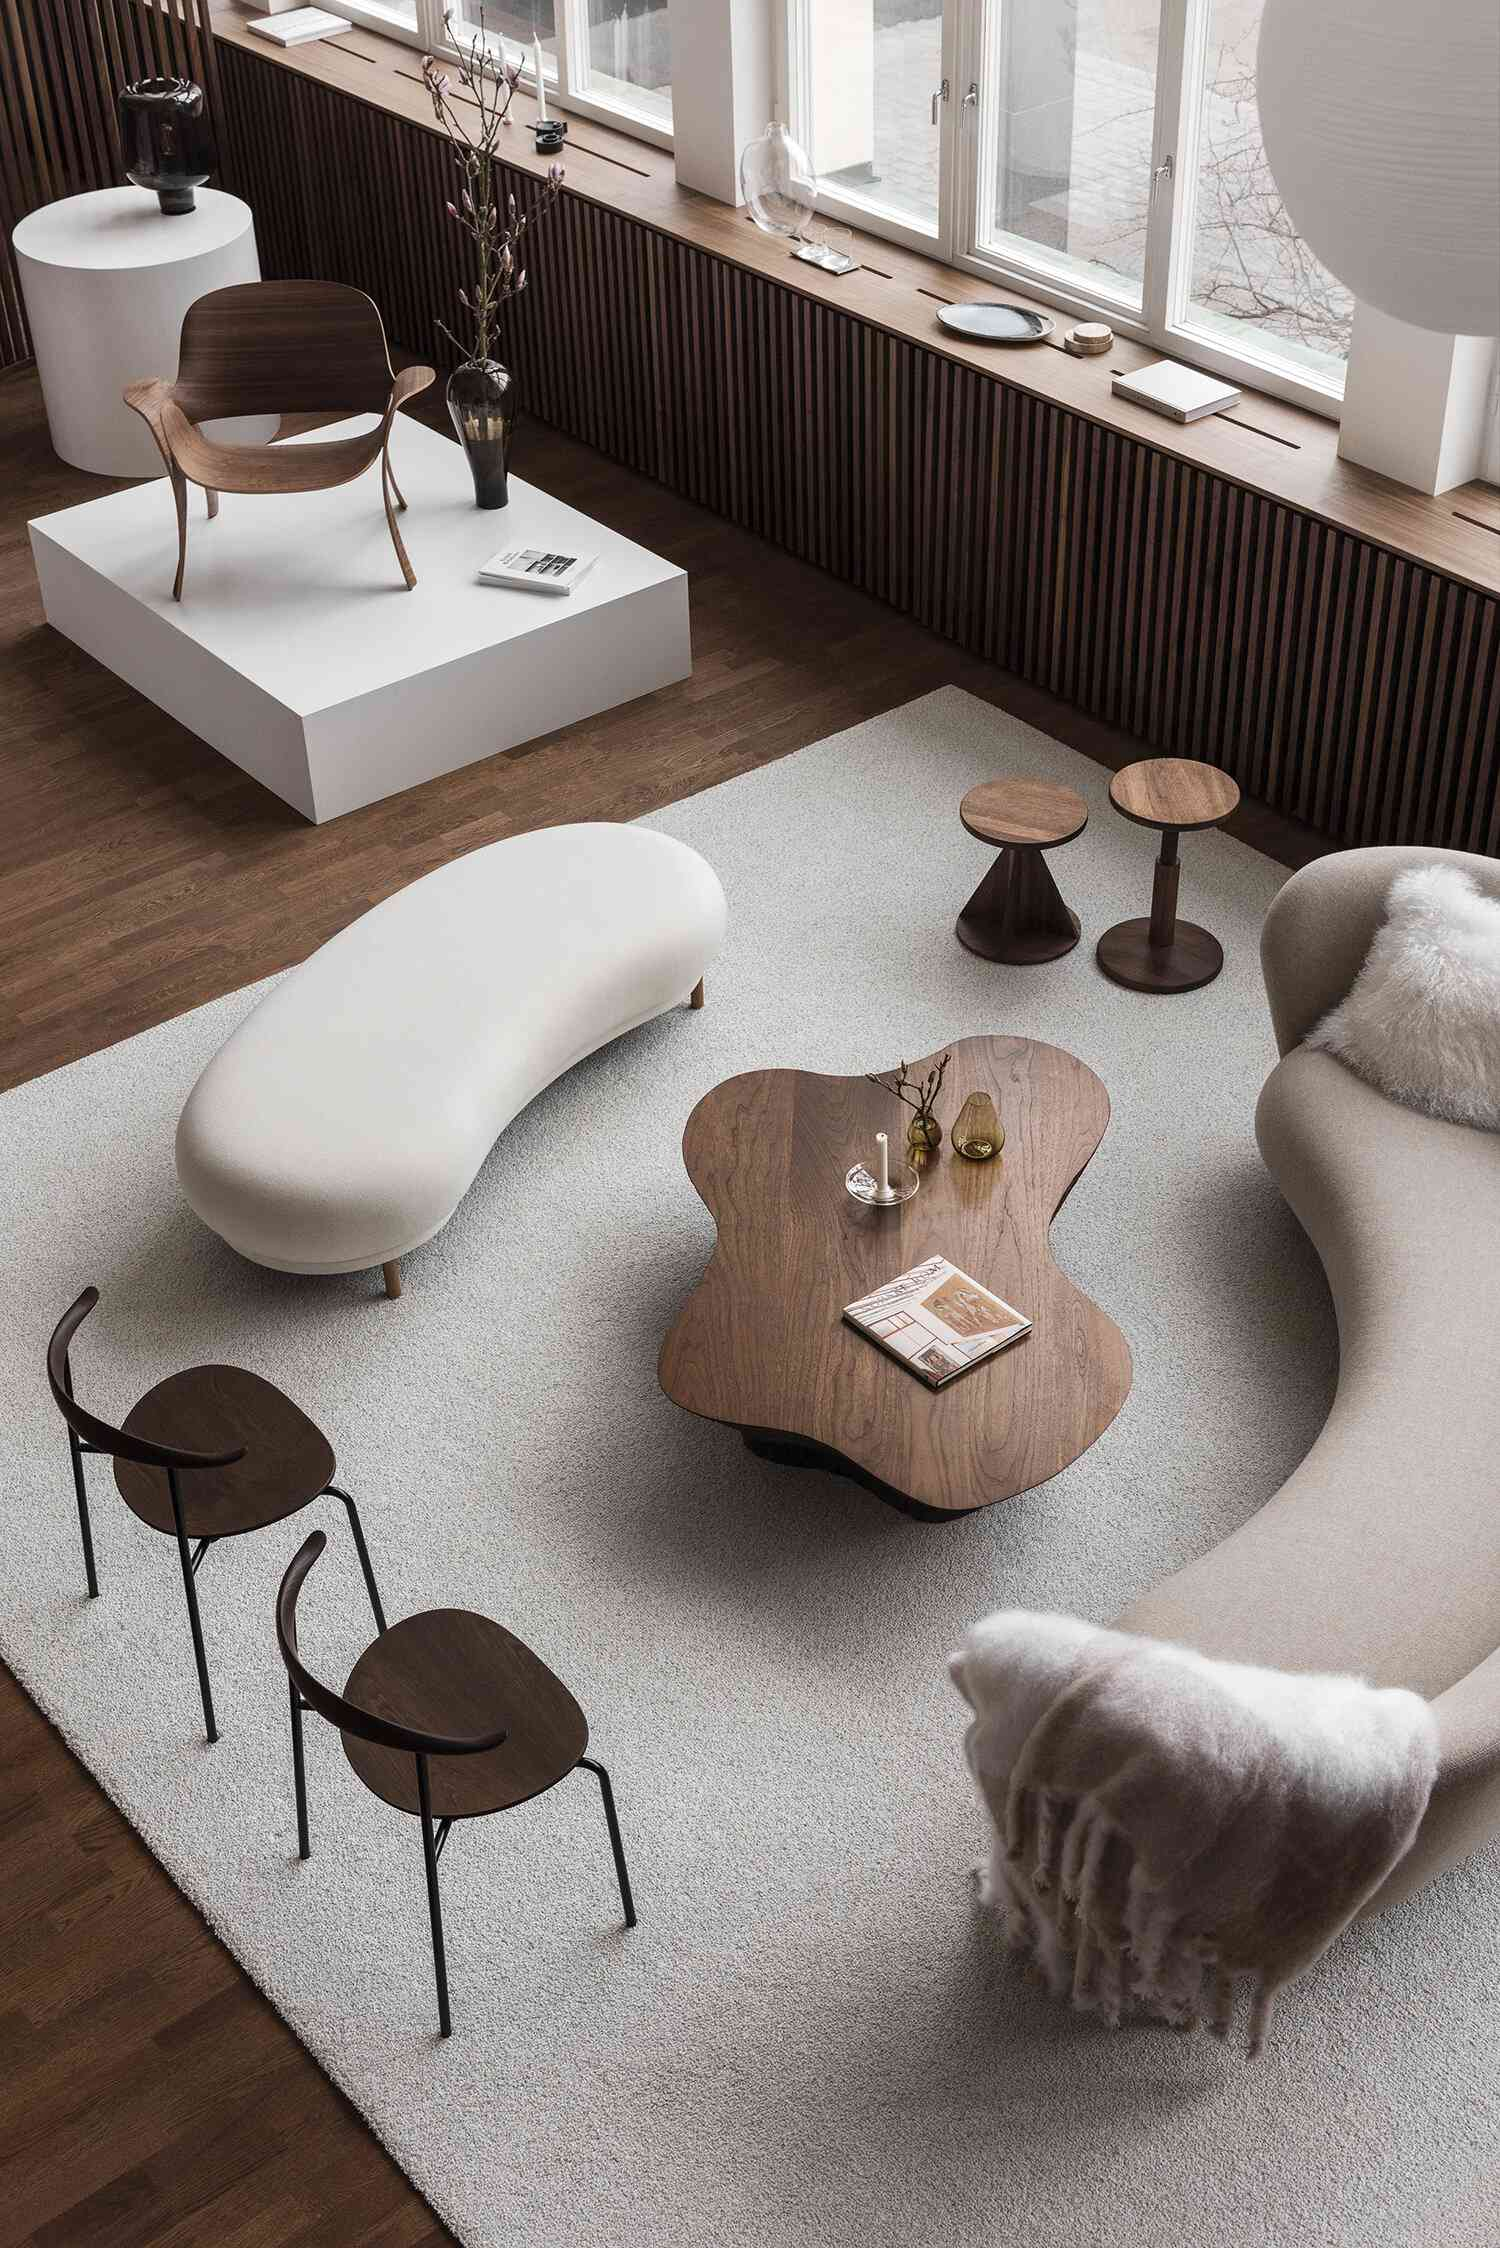 An overhead shot of a living room with contemporary curved couches and tables